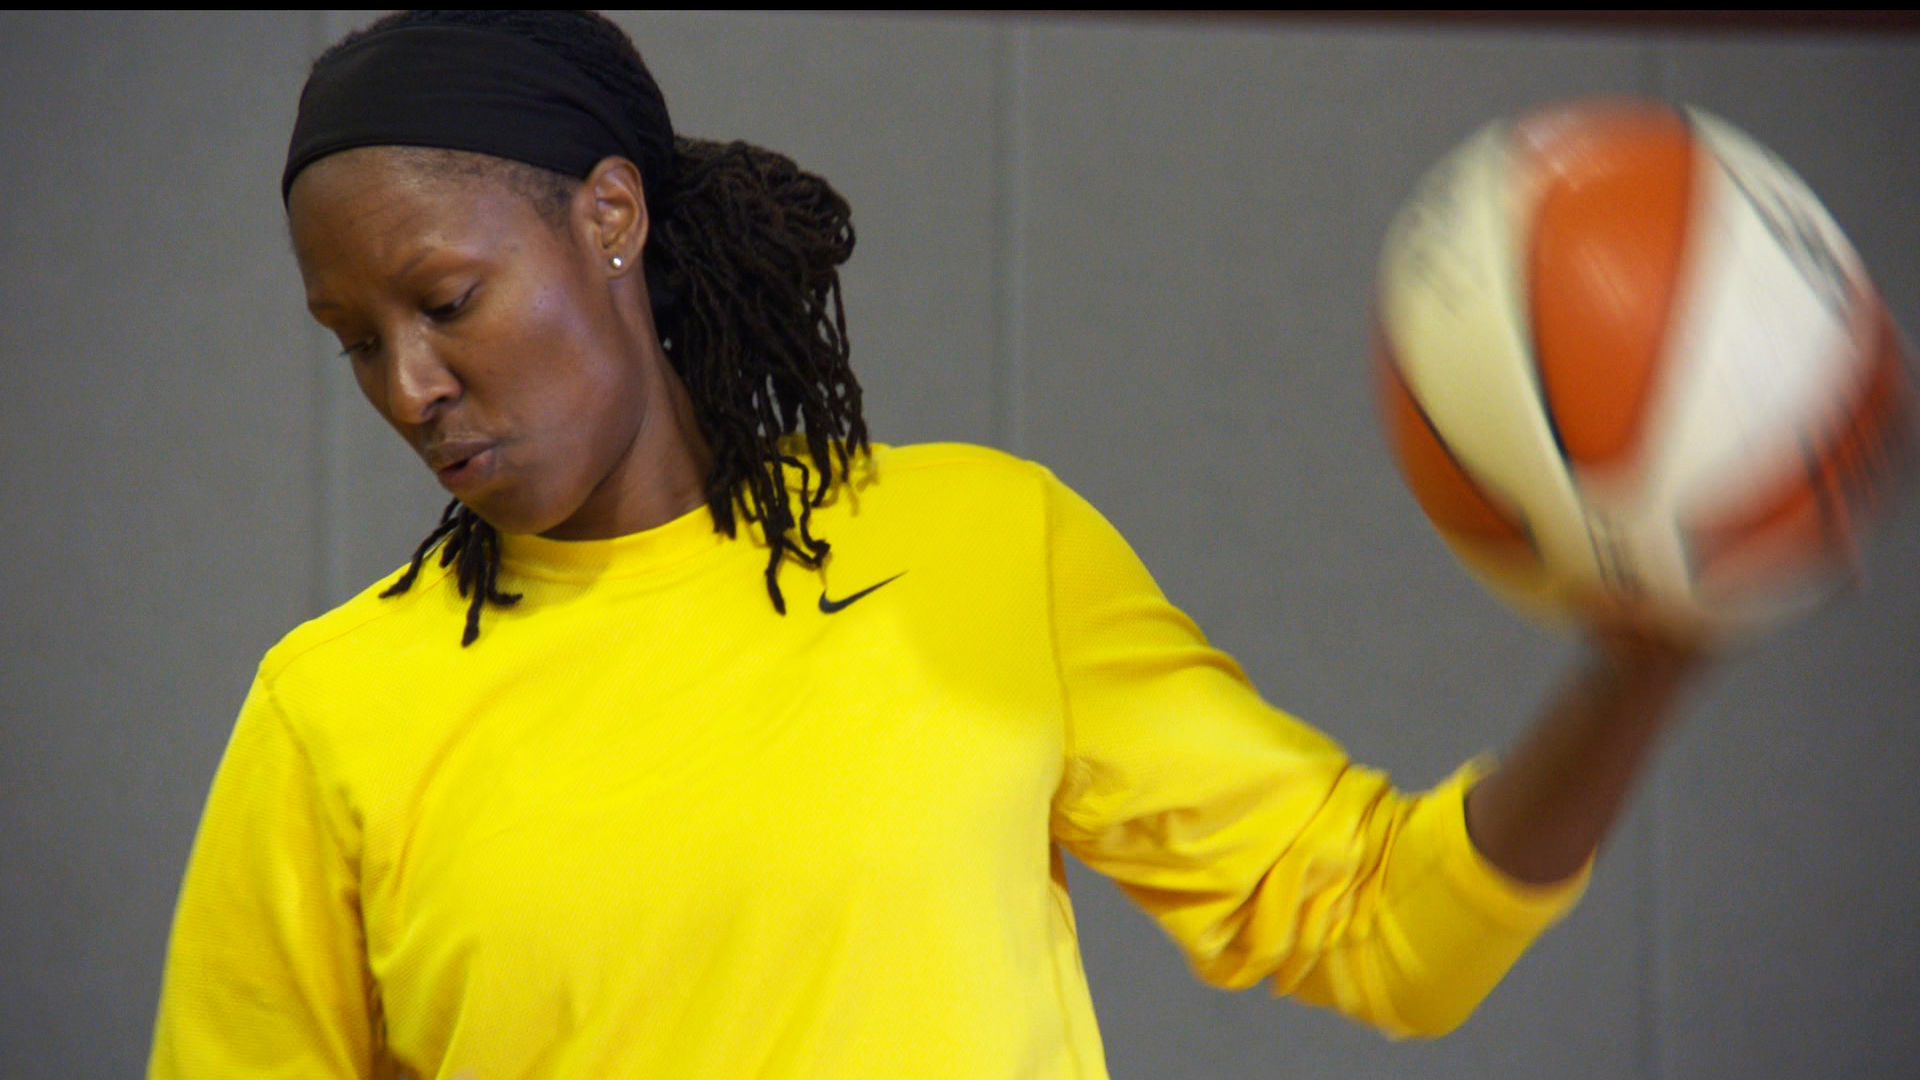 Chamique Holdsclaw, a young athletic black woman, dribbles a basketball